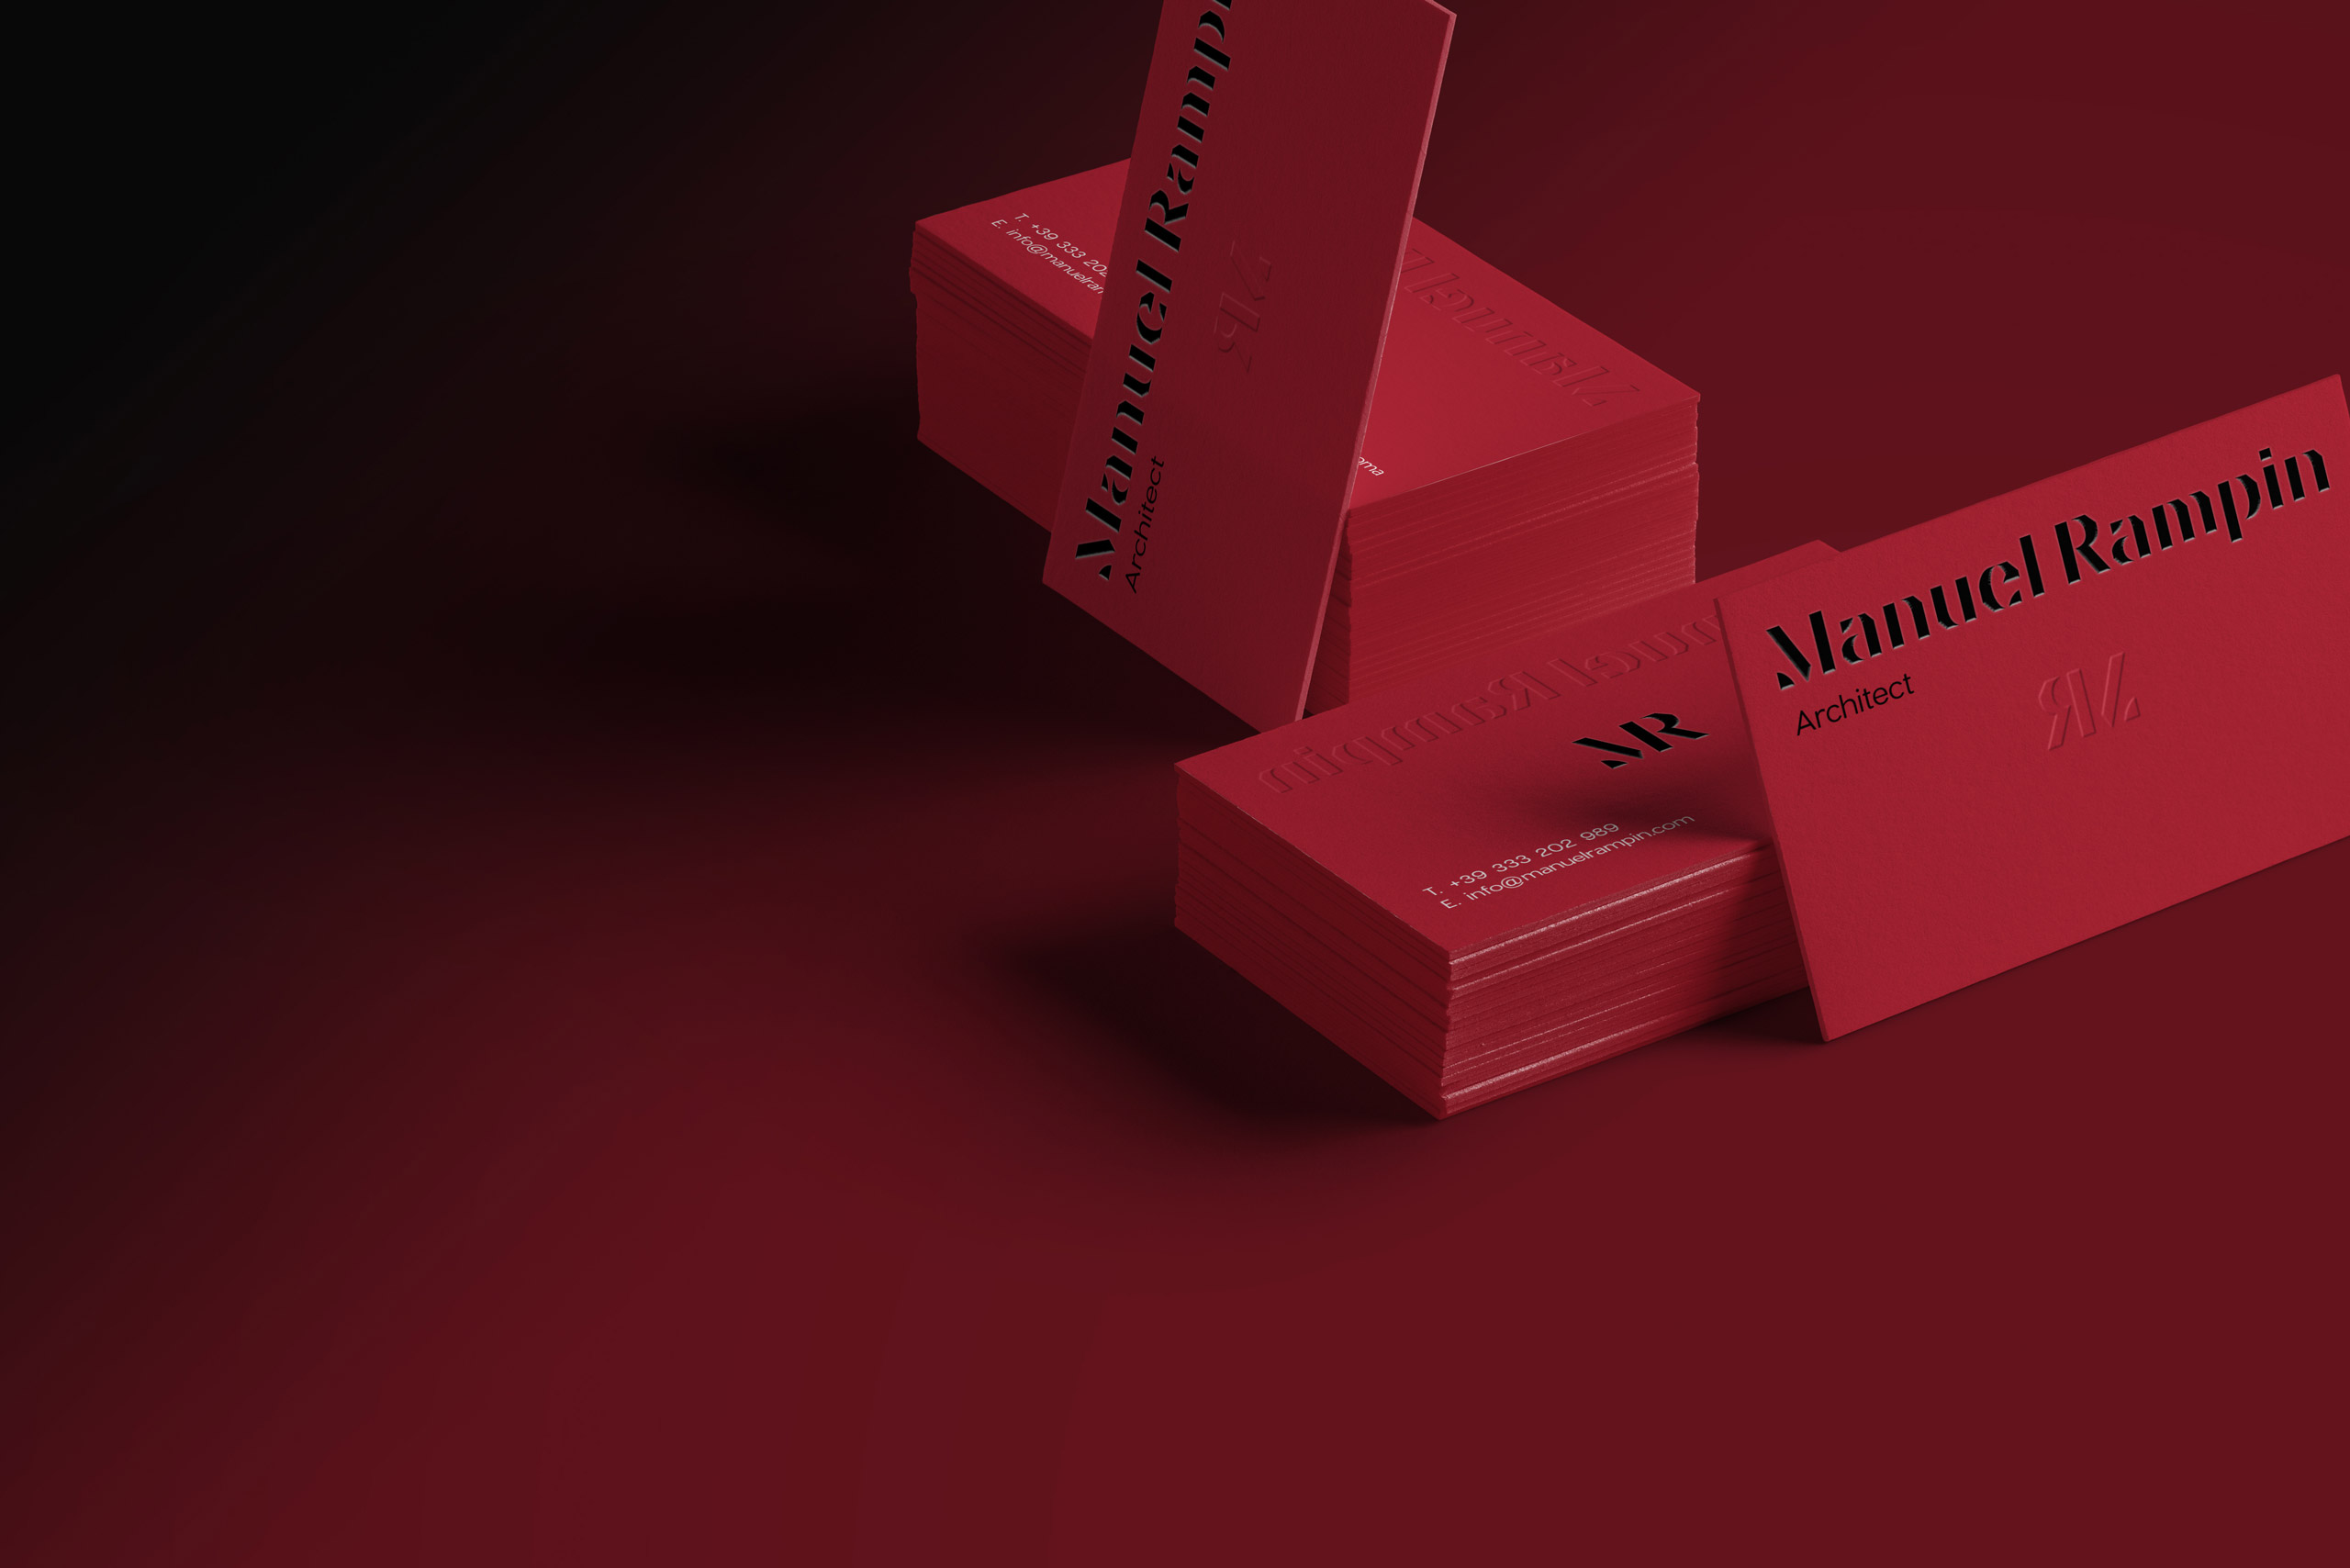 Manuel Rampin business card